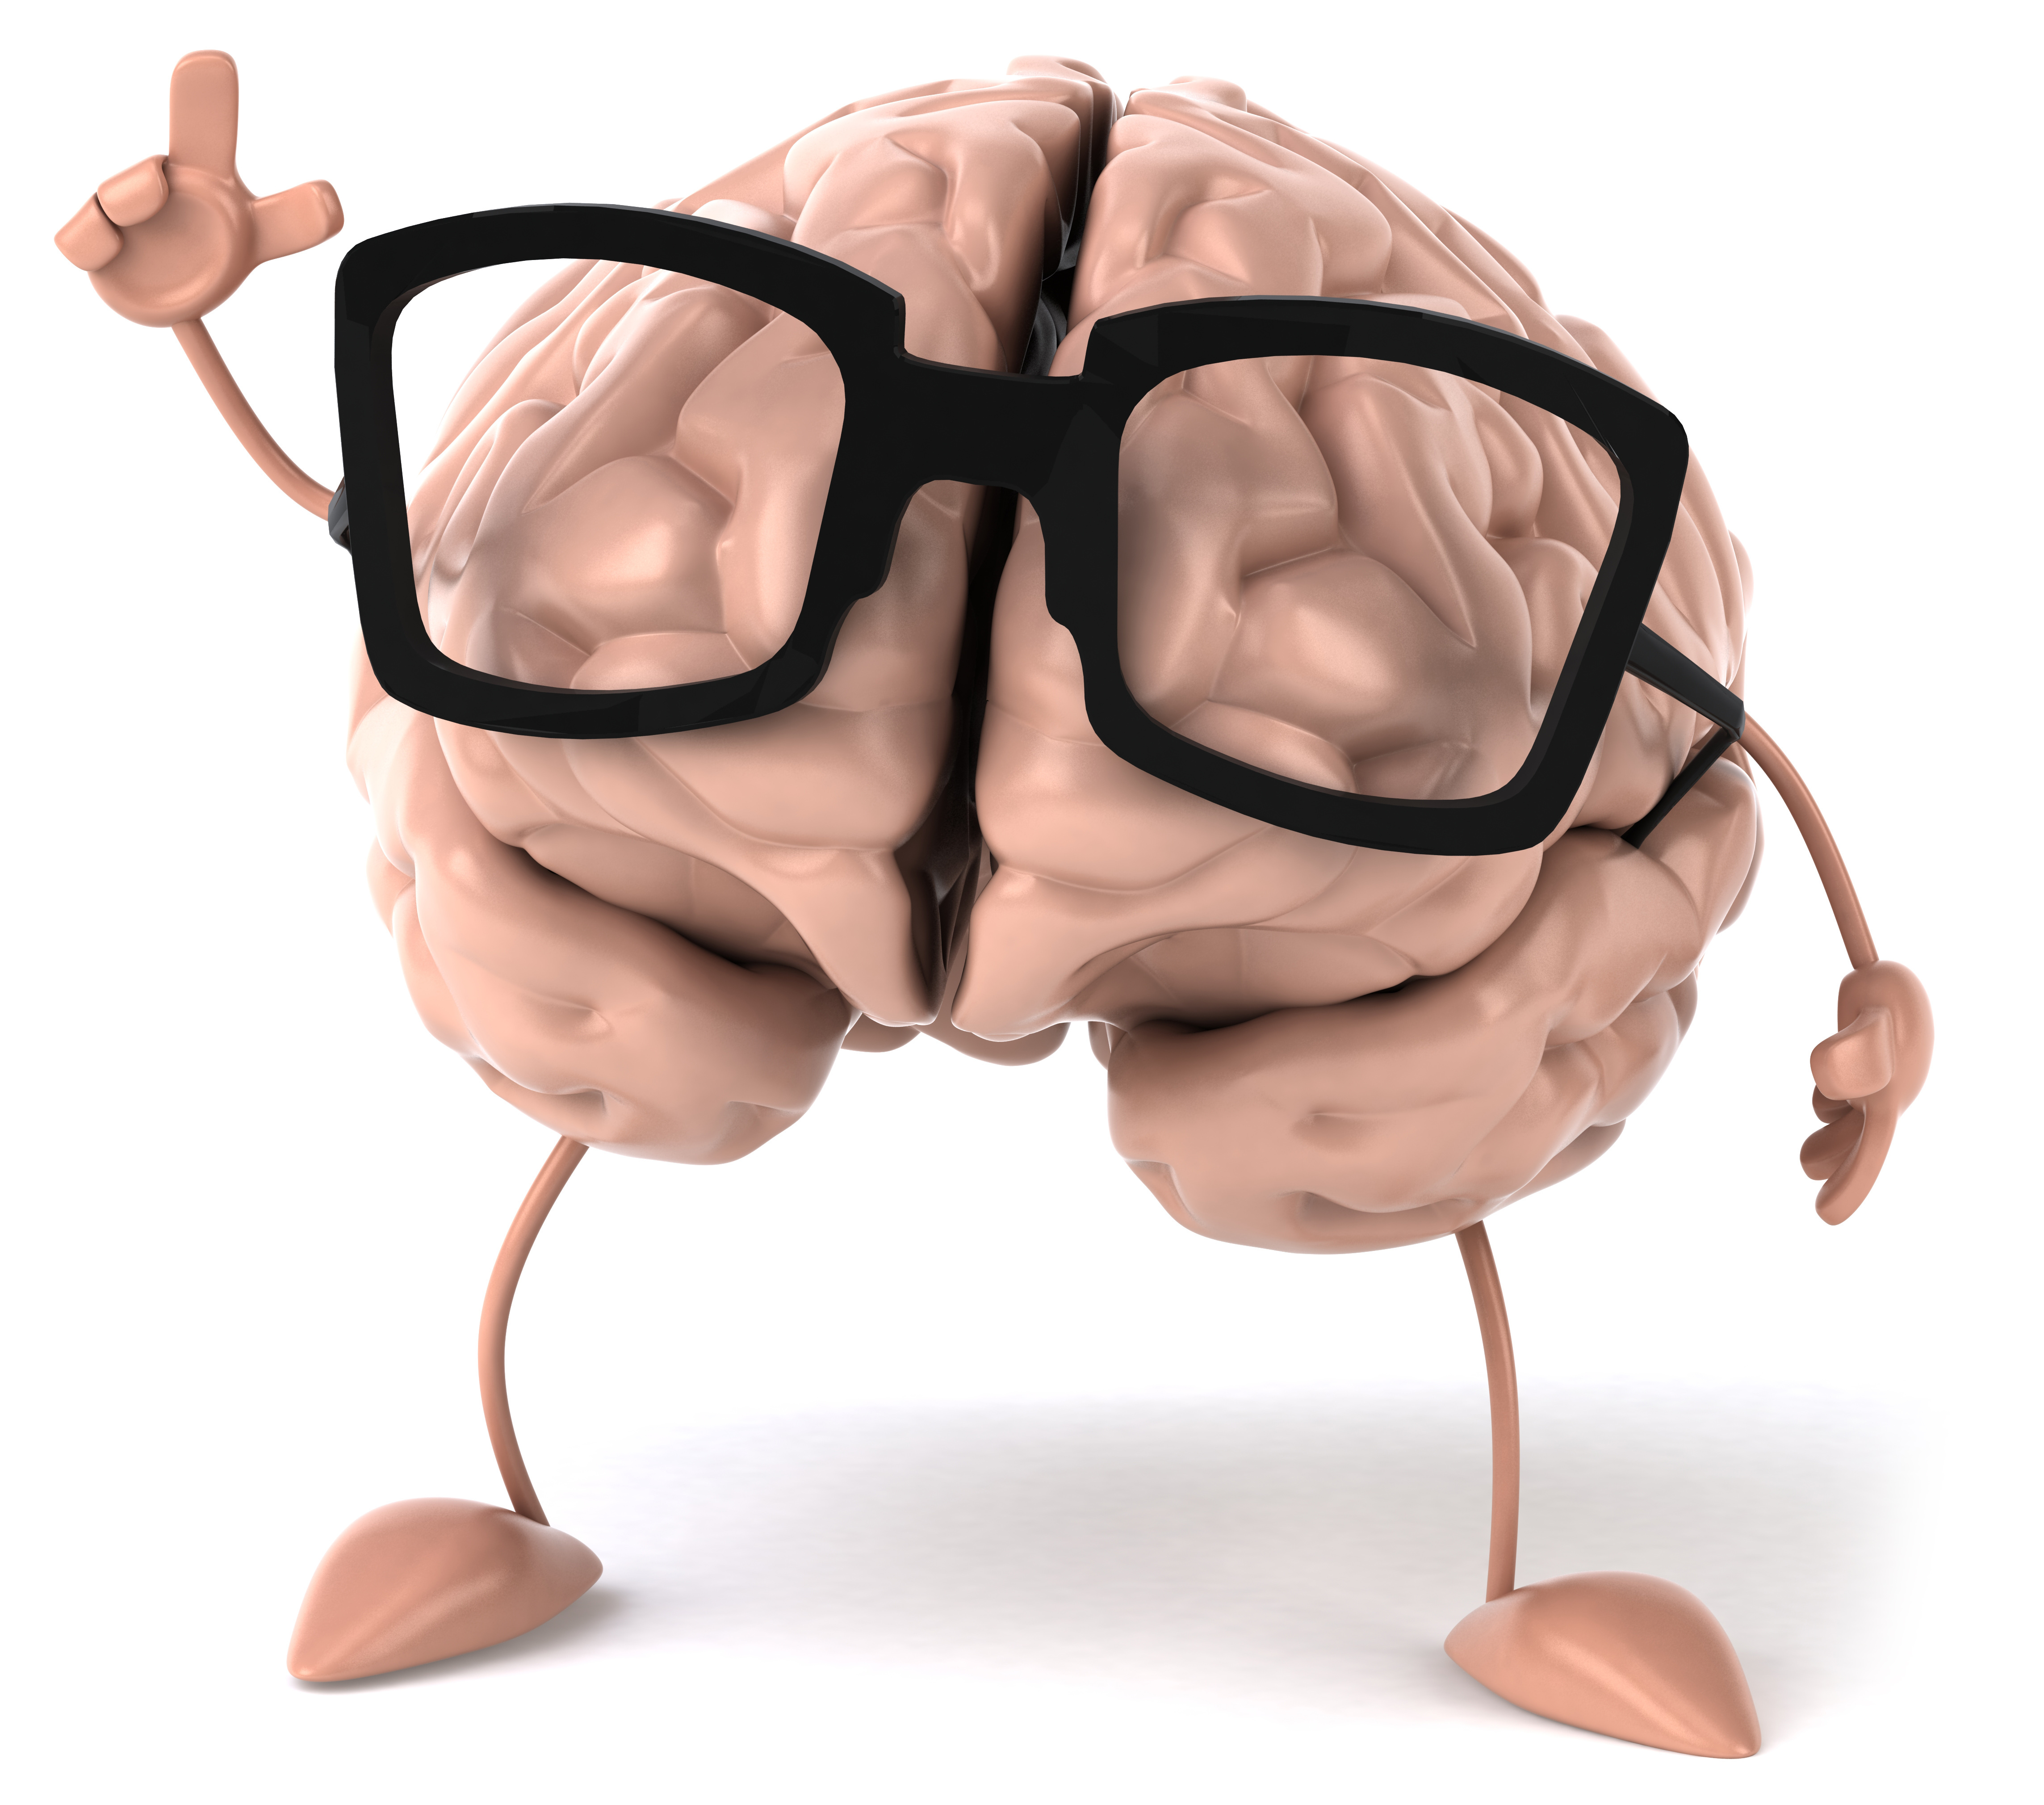 bigstock-Brain-with-glasses-22618763